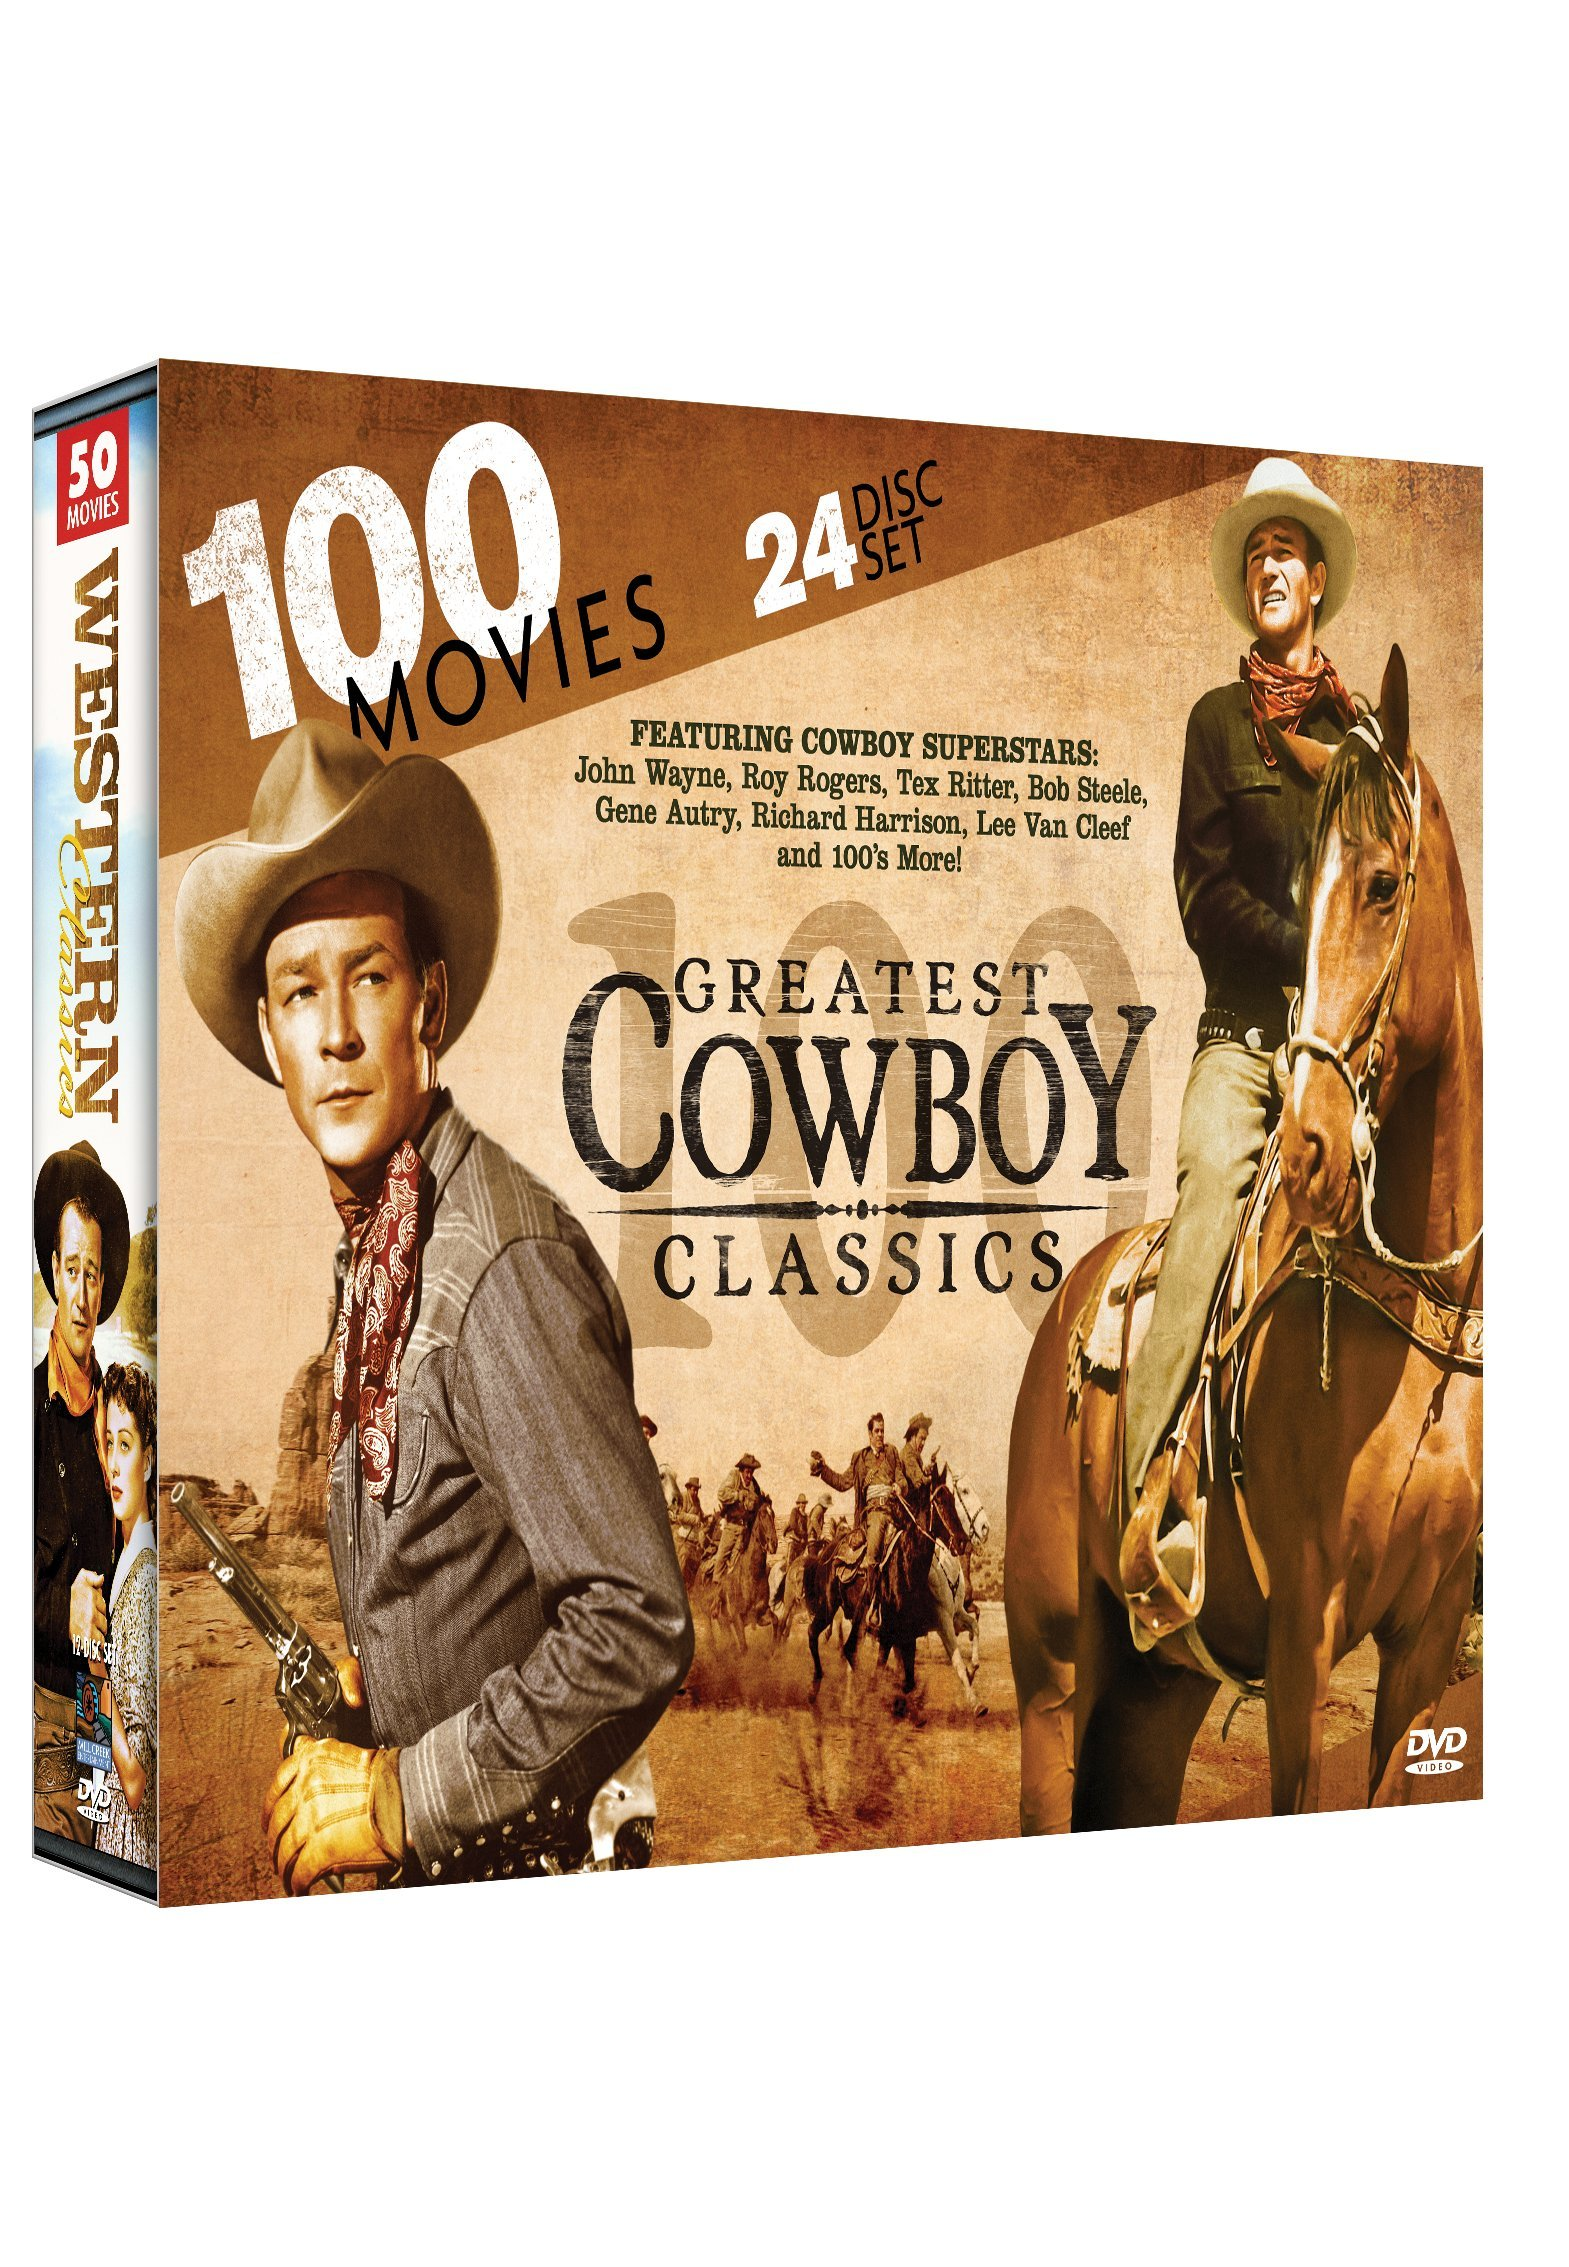 100 Greatest Cowboy Classics: John Wayne - Roy Rogers - Tex Ritter - Bob Steele - Gene Autry - Lee Van Cleef - Angel and the Badman - McLintock! - My Pal Trigger - Santa Fe Trail - Grand Duel + many more!